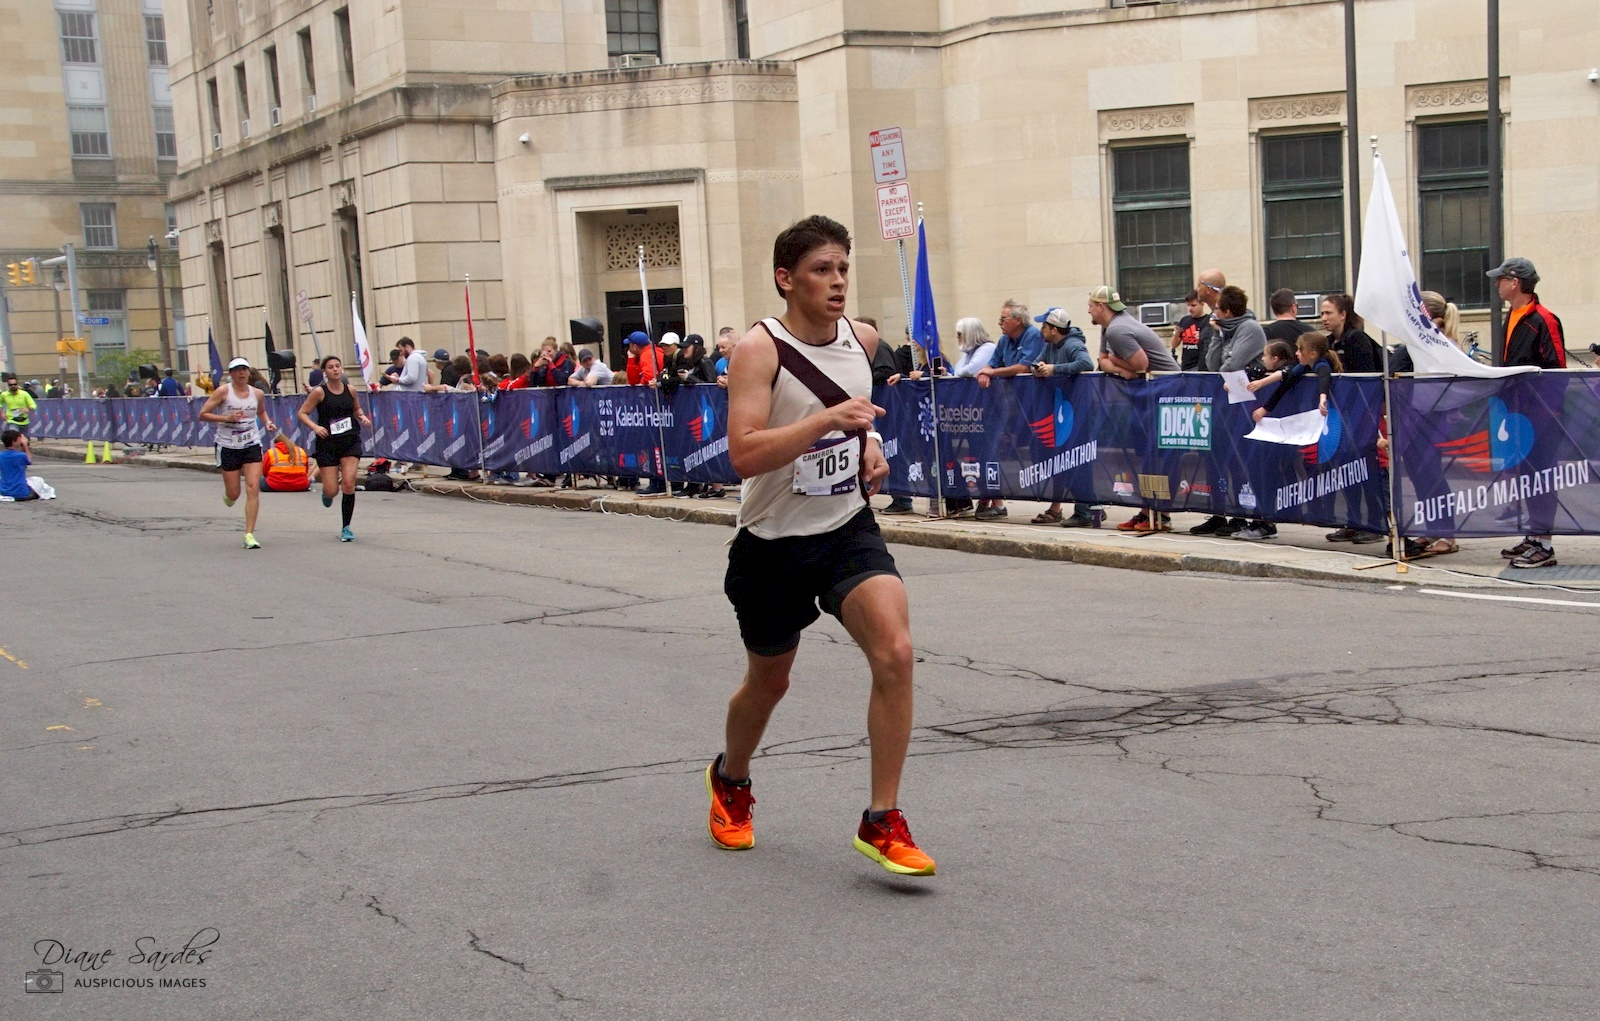 Buffalo Marathon weekend 1113.jpg